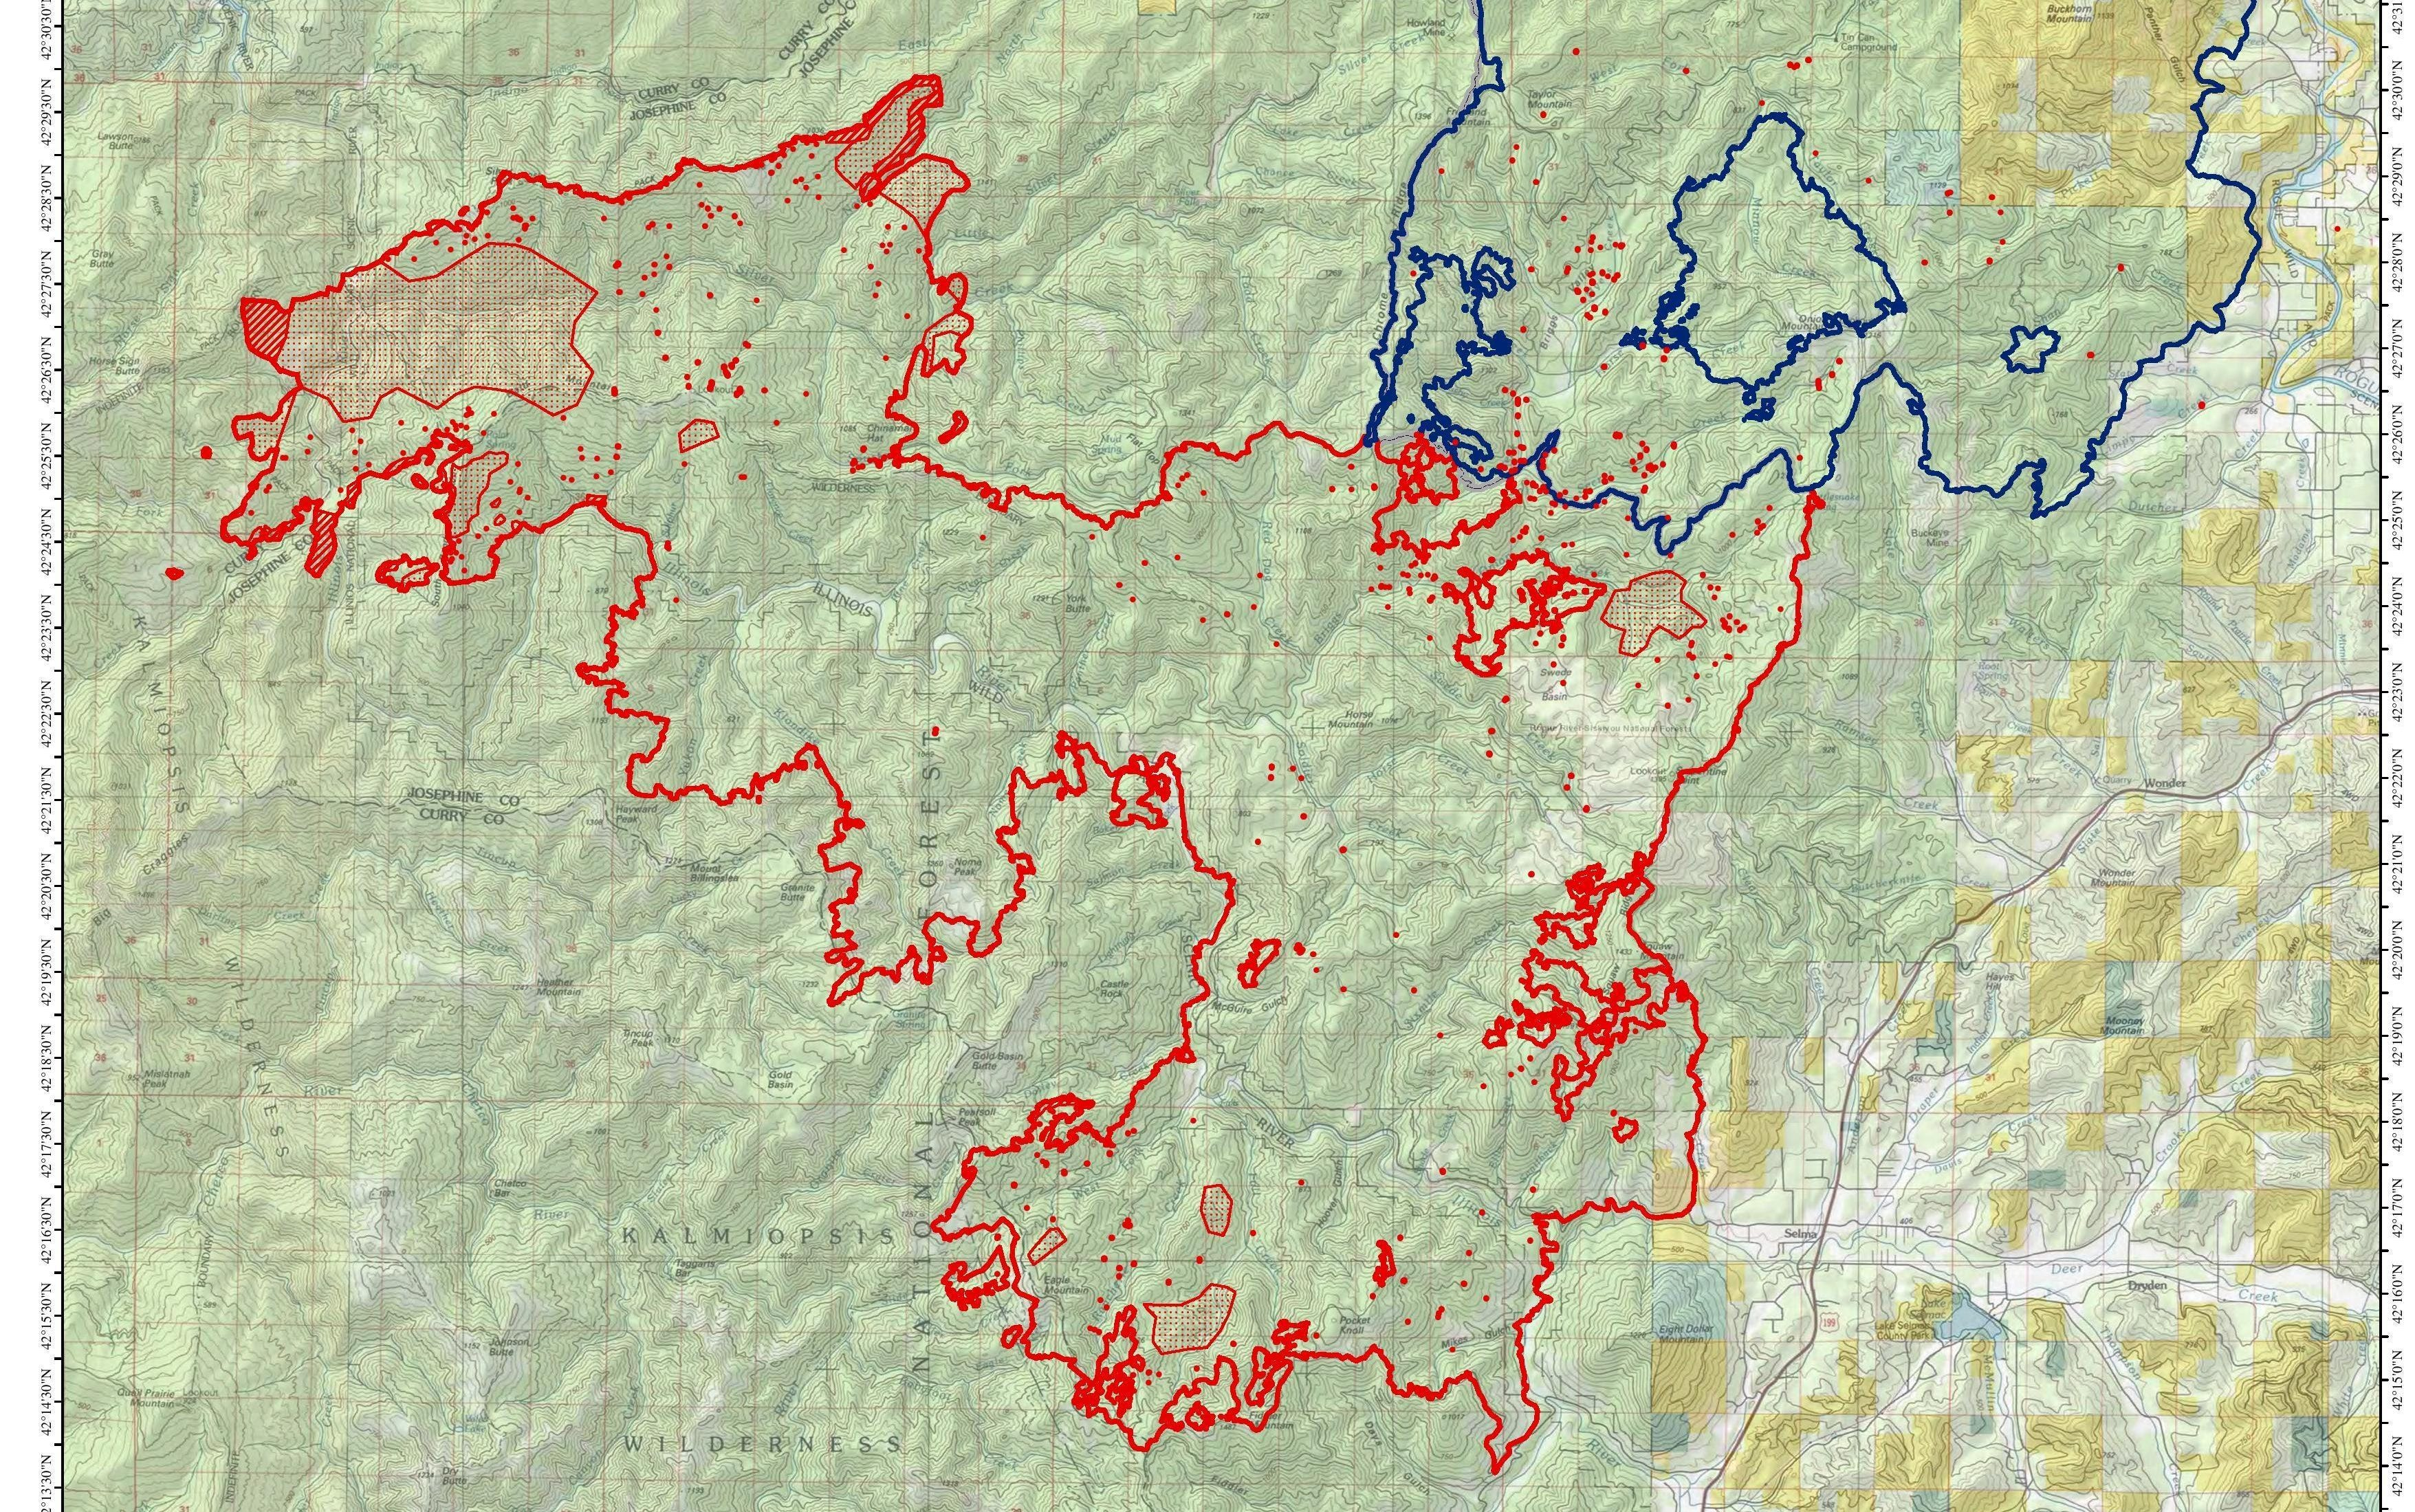 Perimeter of the Klondike Fire.